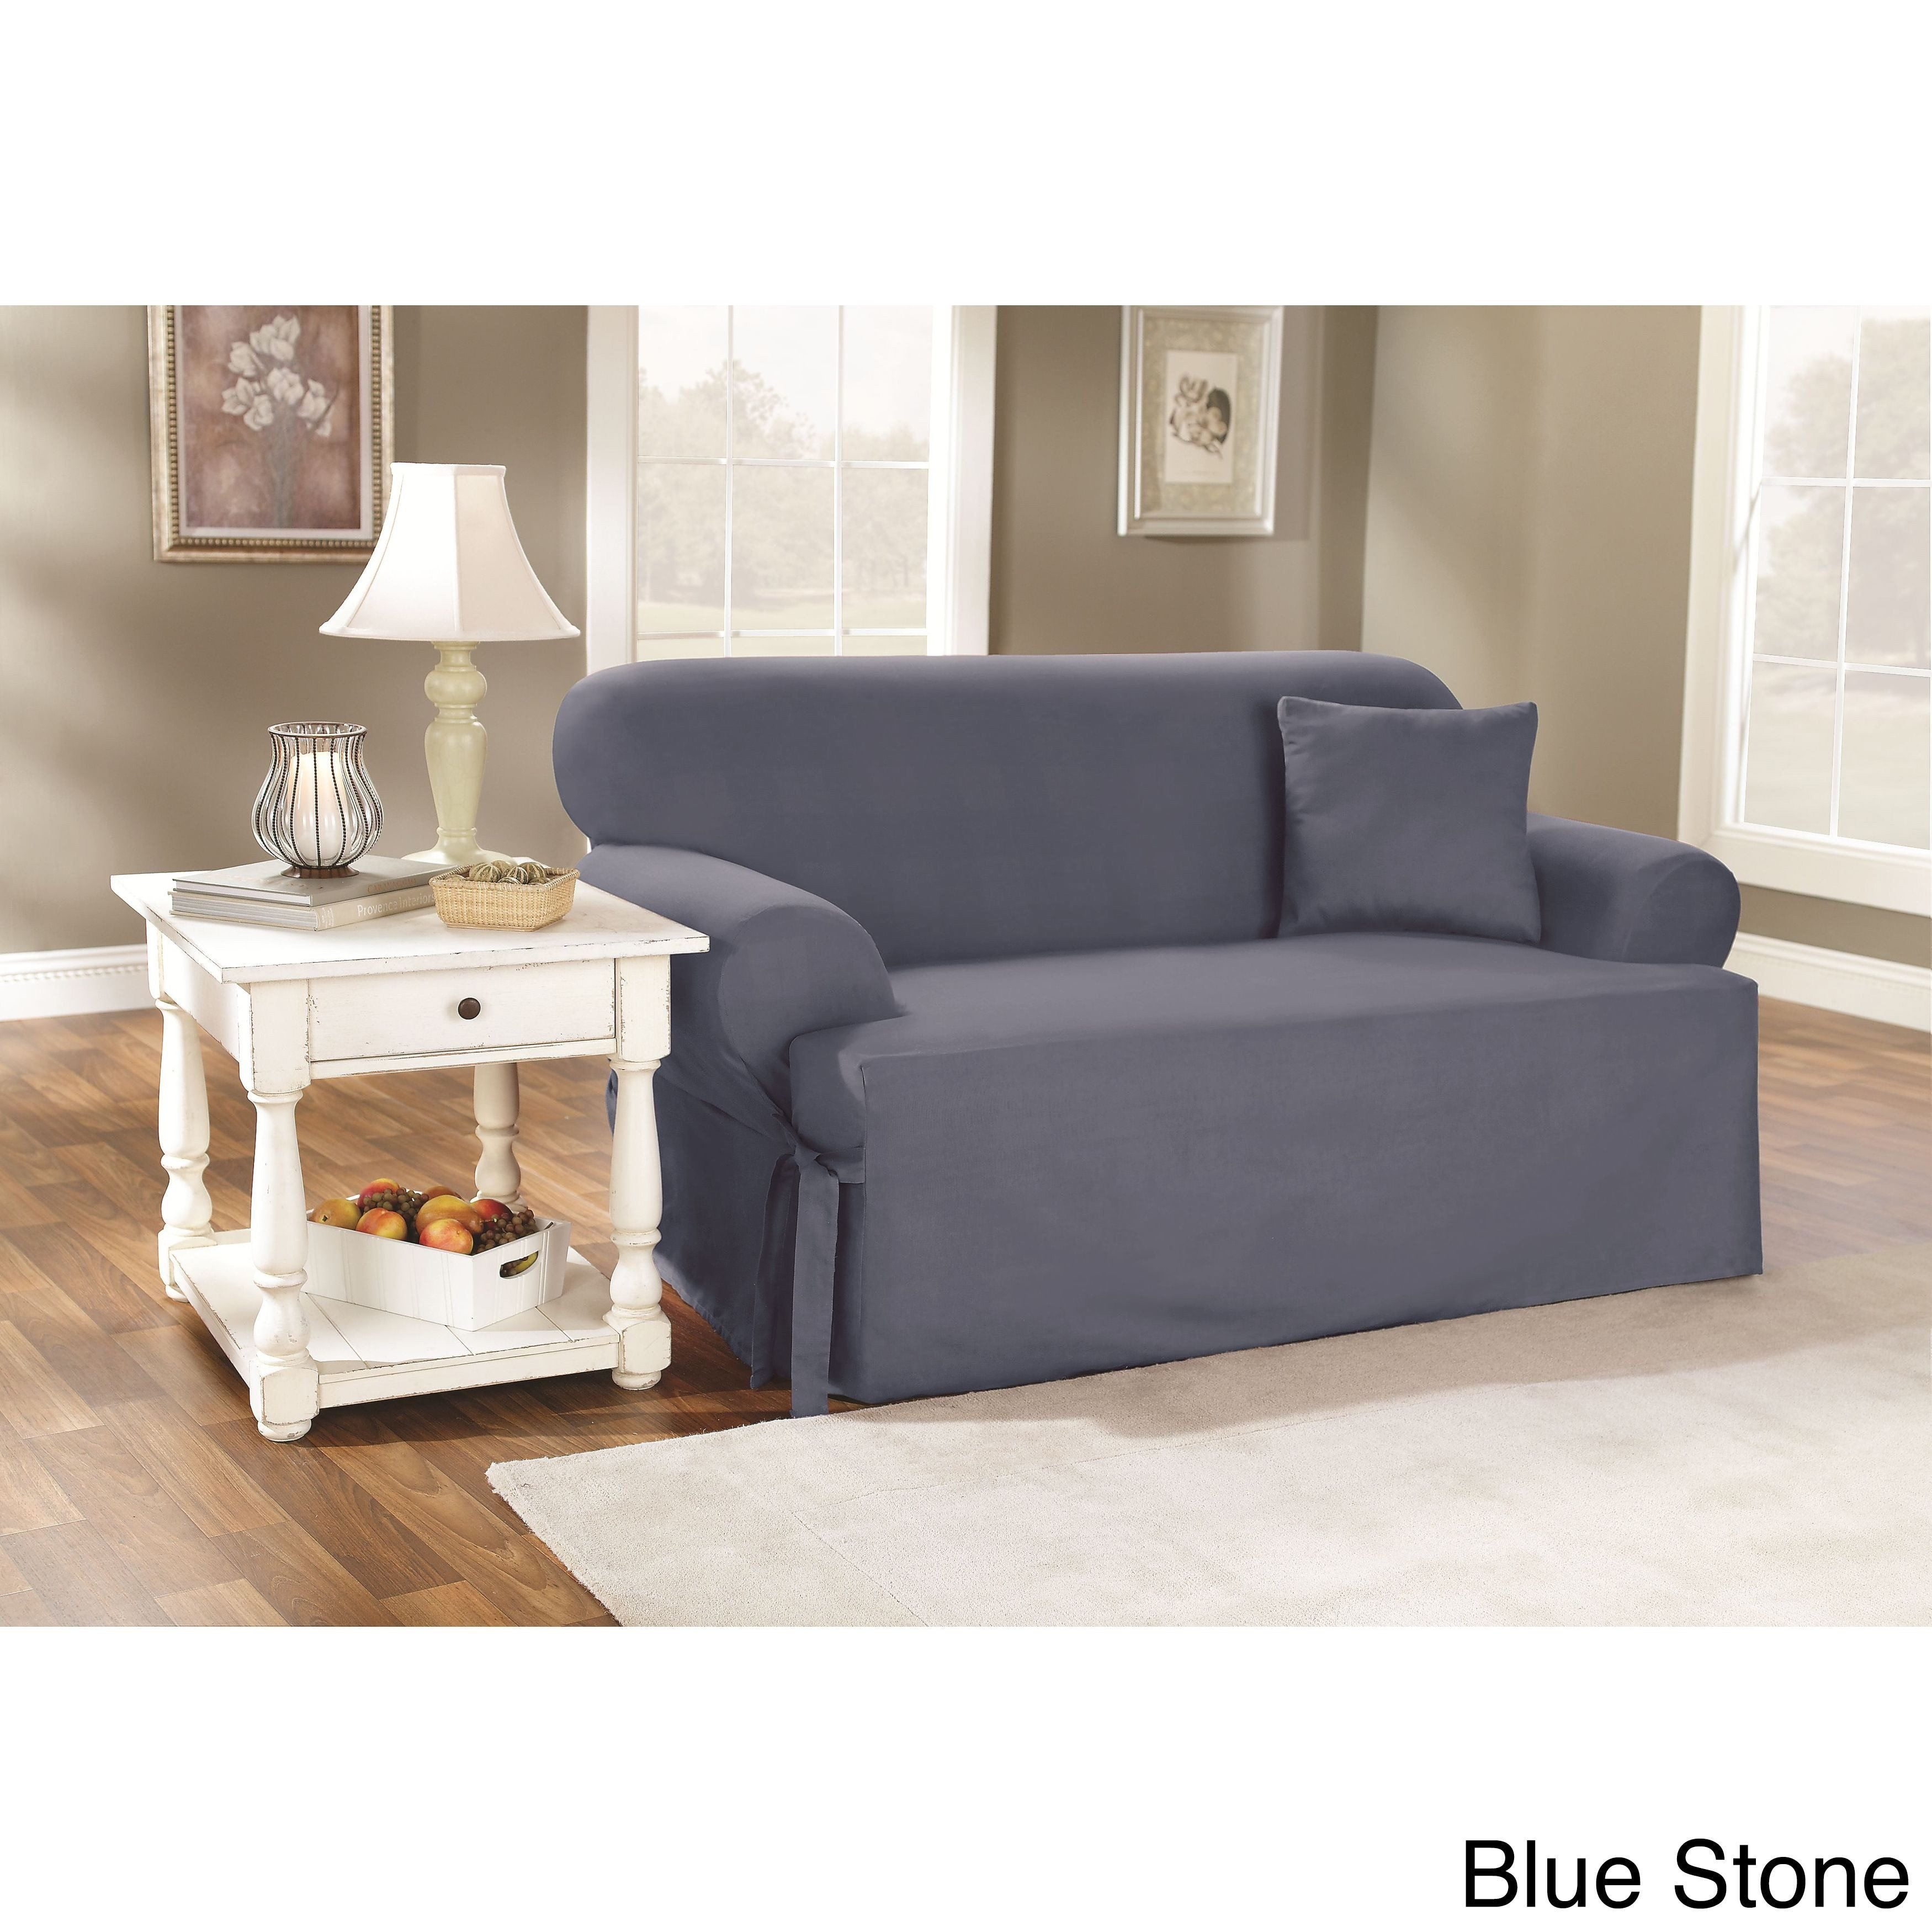 stylish mforum sofa wayfair within discount furniture slipcovers chairs tools for and online on slipcover exquisite